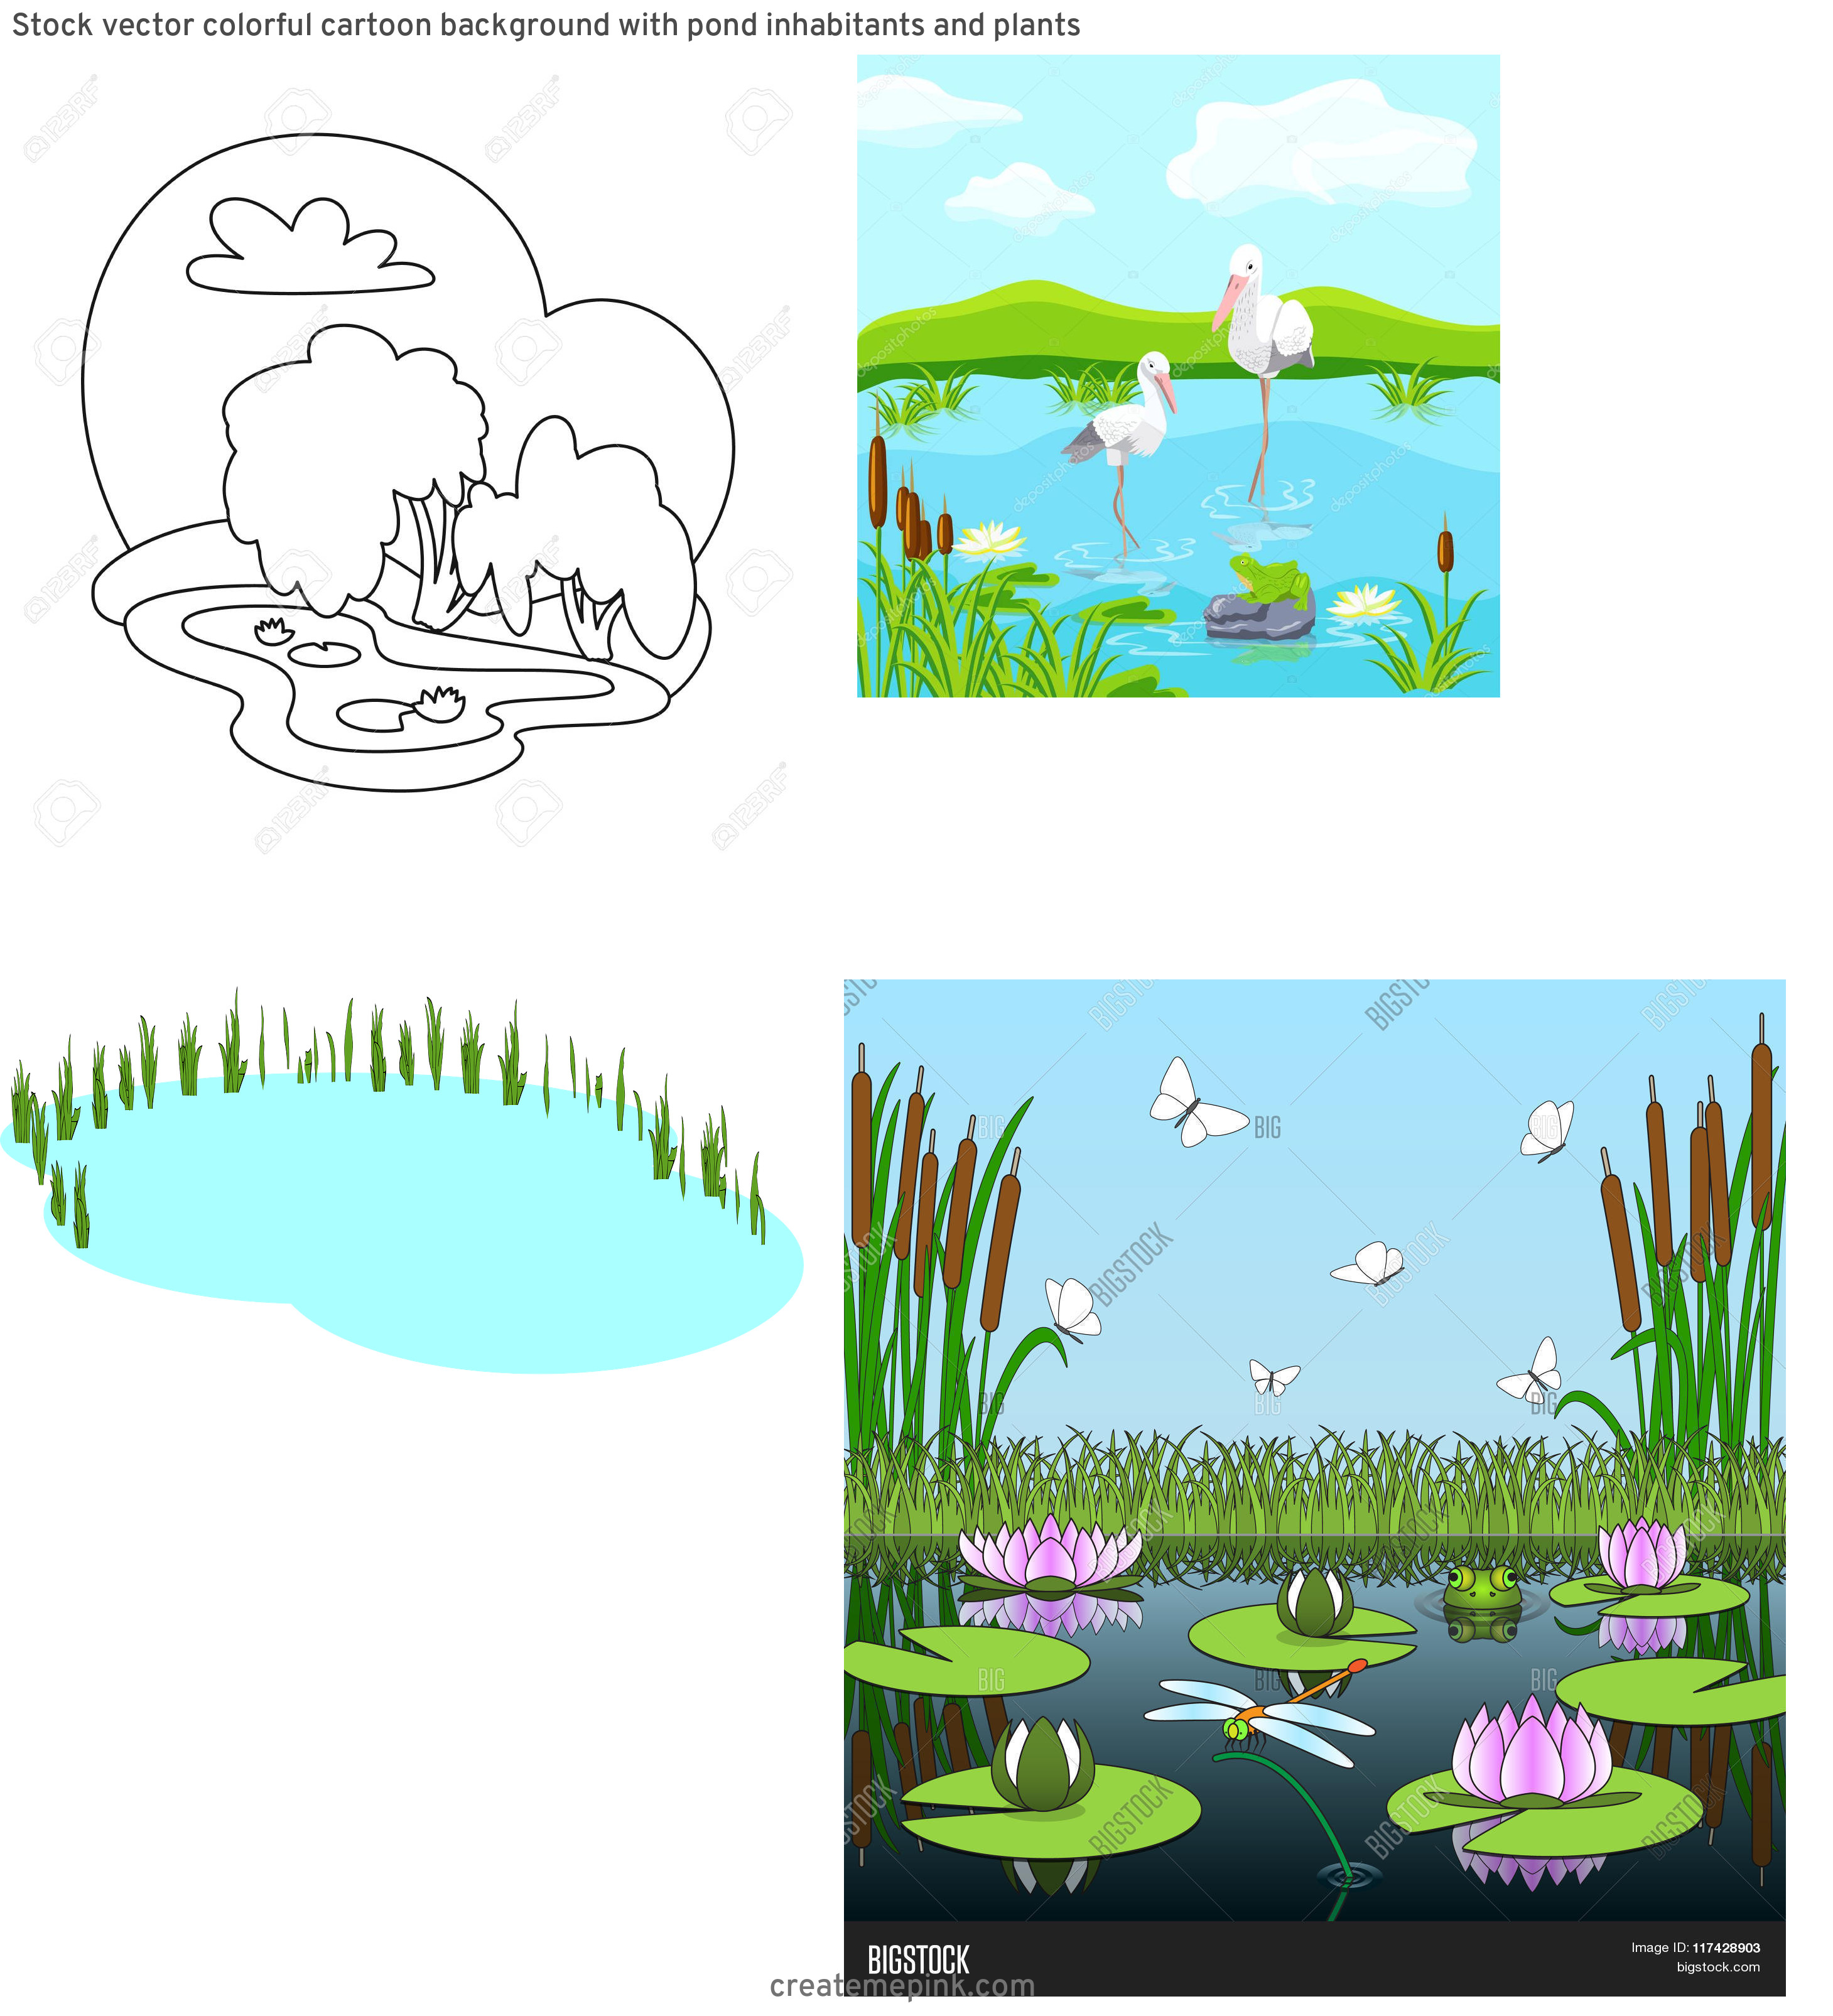 Vector Wetland: Stock Vector Colorful Cartoon Background With Pond Inhabitants And Plants